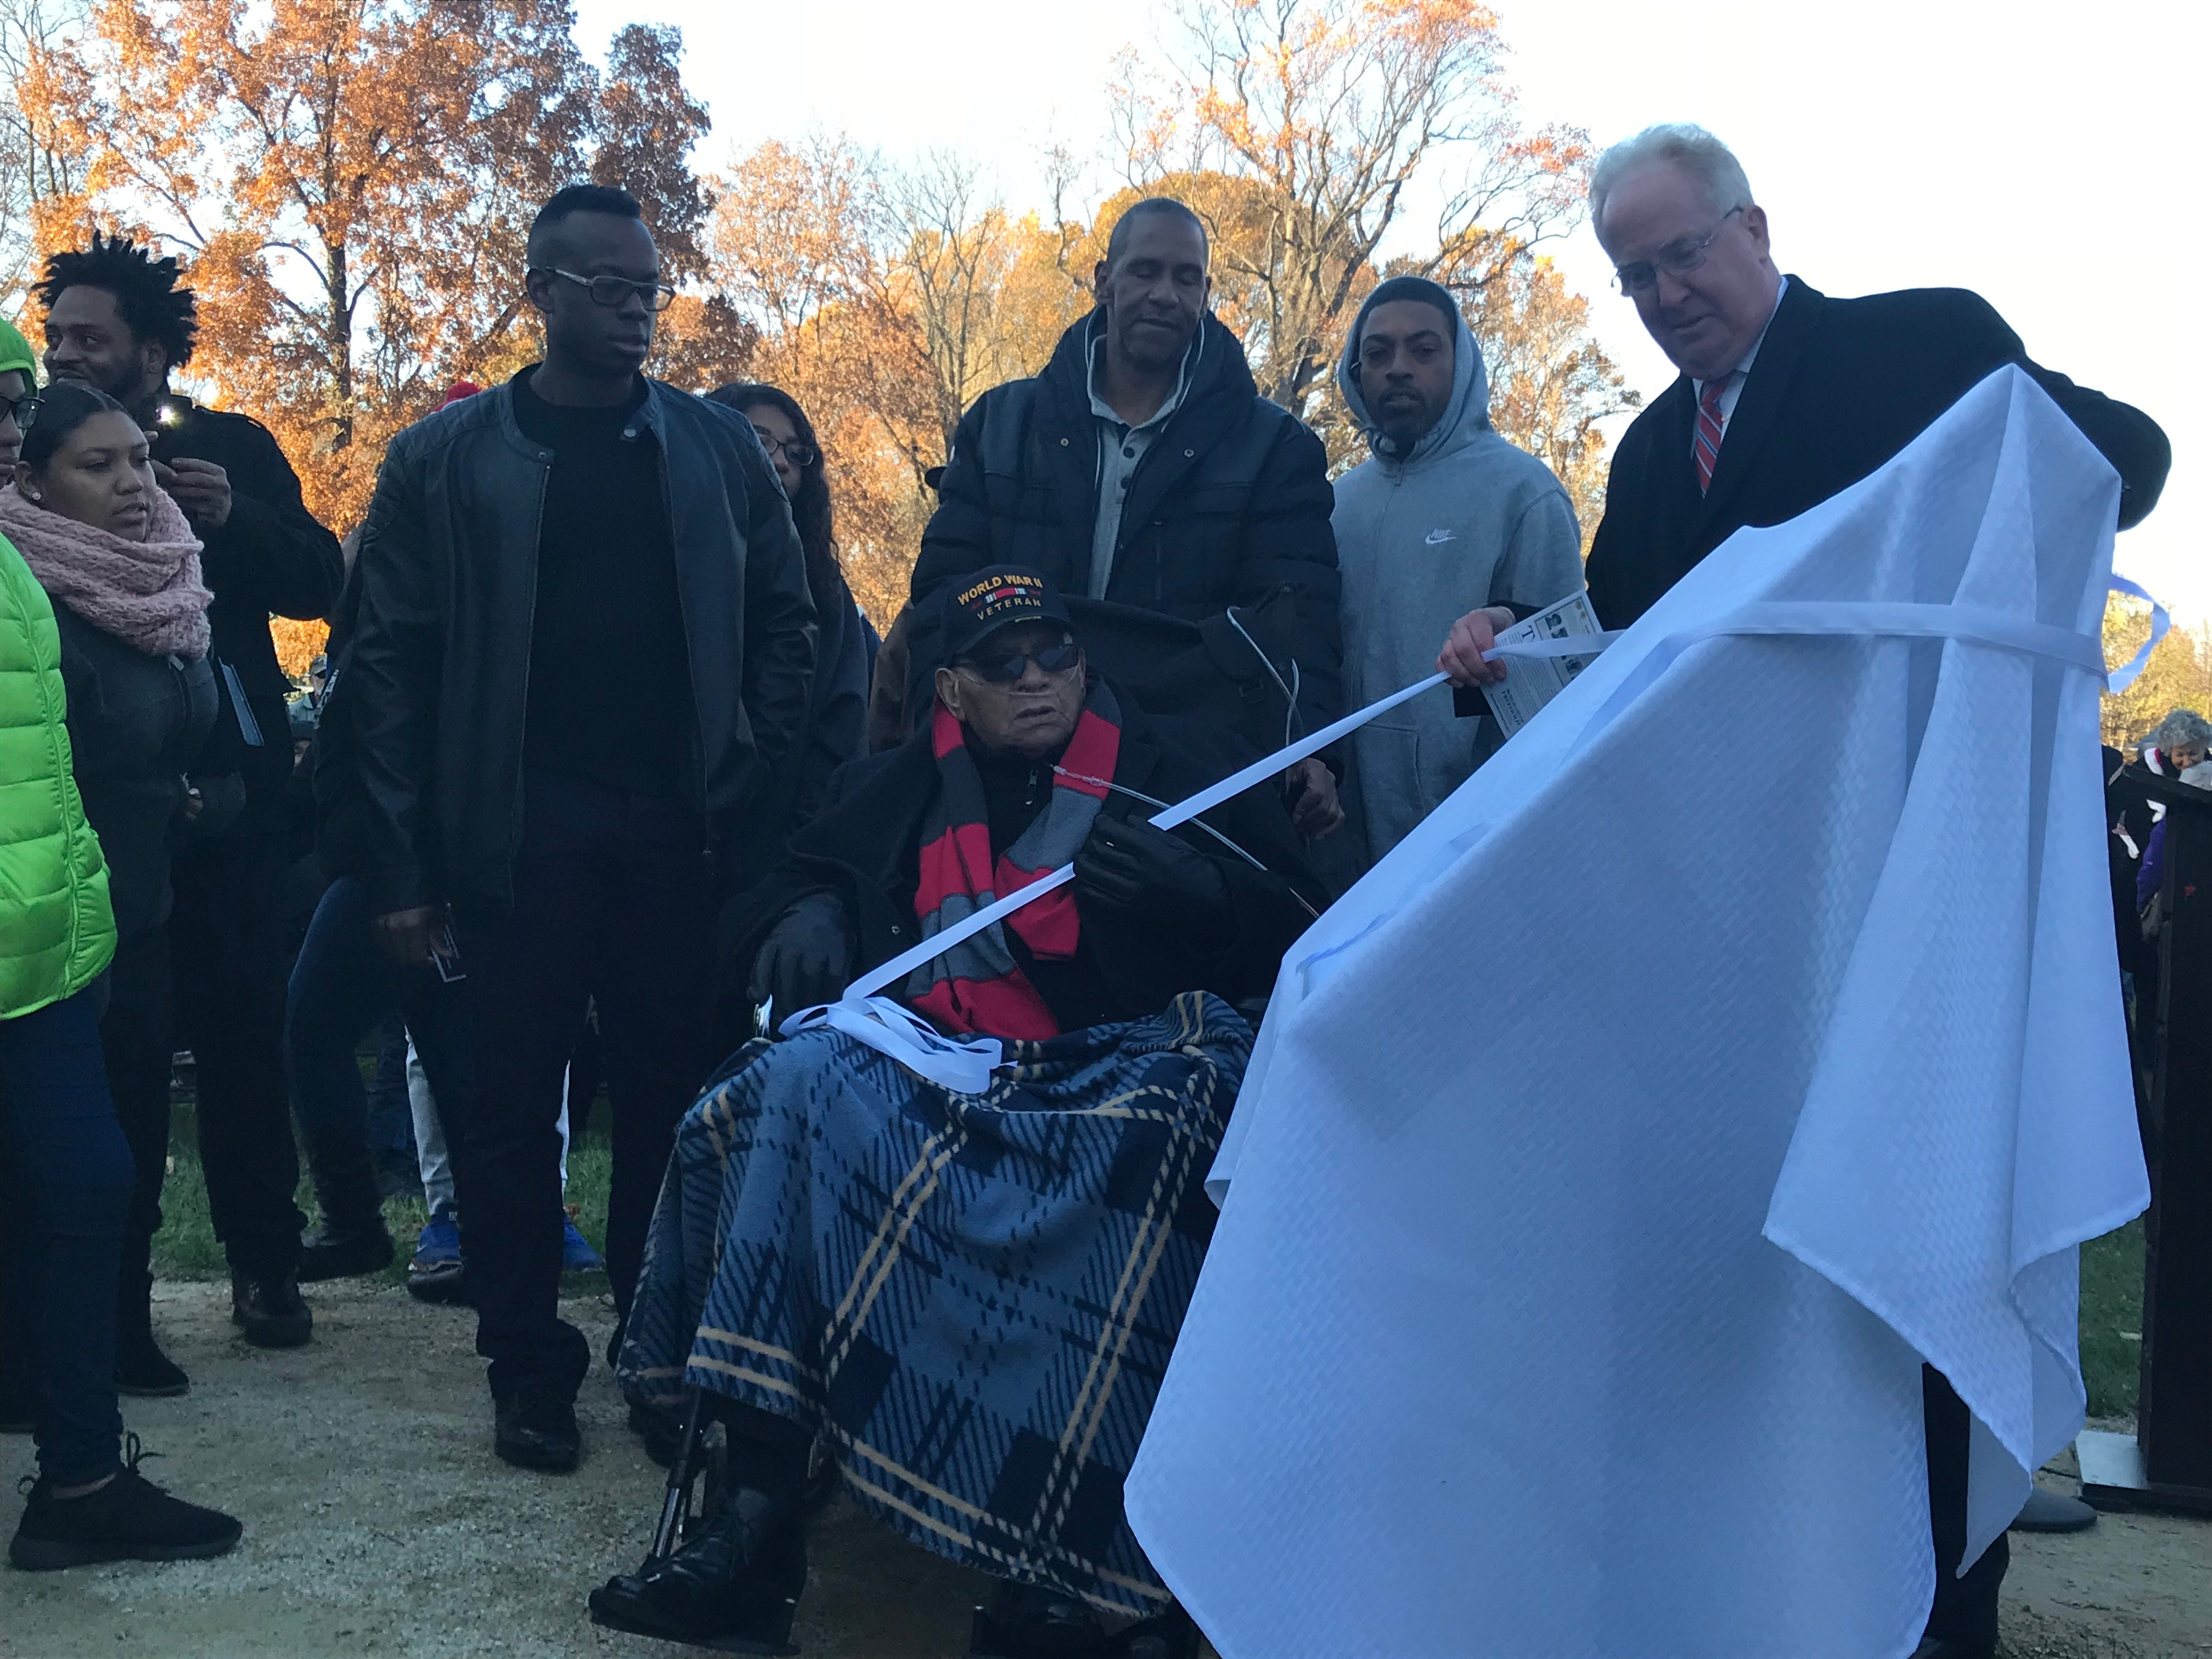 """Freehold Borough Mayor J. Nolan Higgins, right, and Bigerton """"Buddy"""" Lewis Jr., center, slowly unveil the marker dedicated to Lewis and his five brothers, who all served in World War II. The ceremony was held Sunday, Nov. 11, 2018, at Veterans Park."""